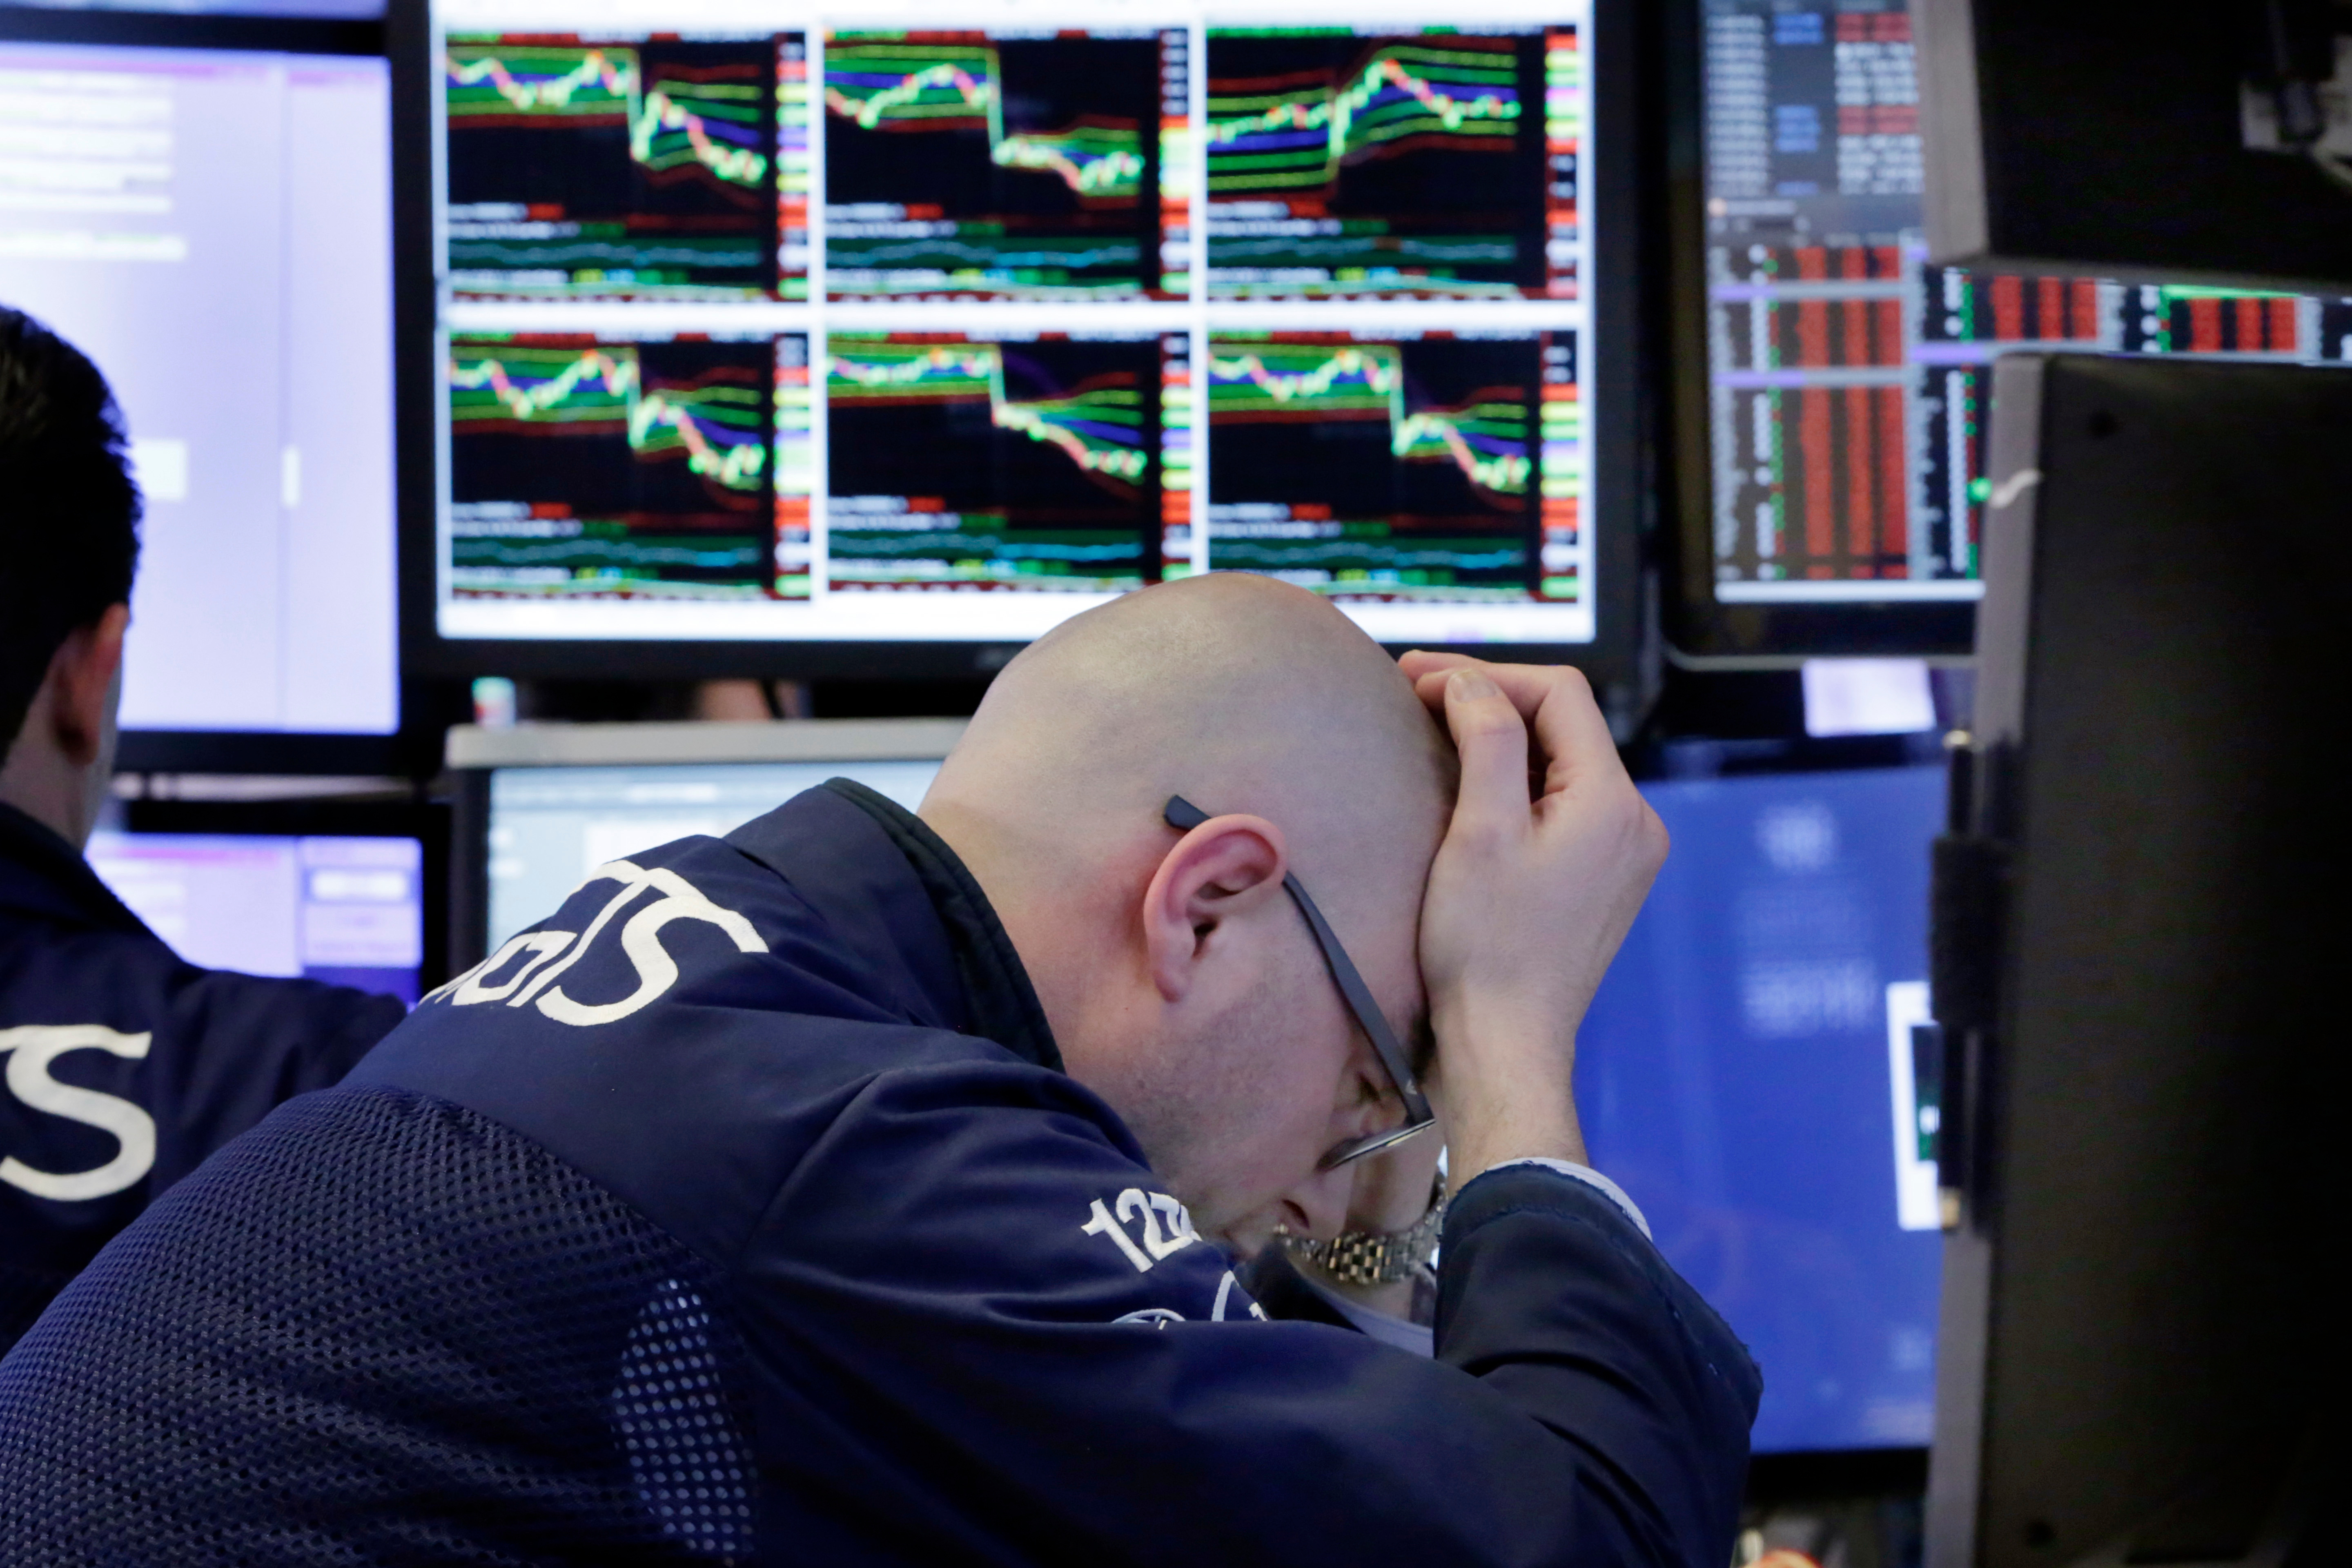 Specialist Mario Picone works at his post on the floor of the New York Stock Exchange, April 6, 2018. Stocks fell again as trade tensions grew between the U.S. and China.